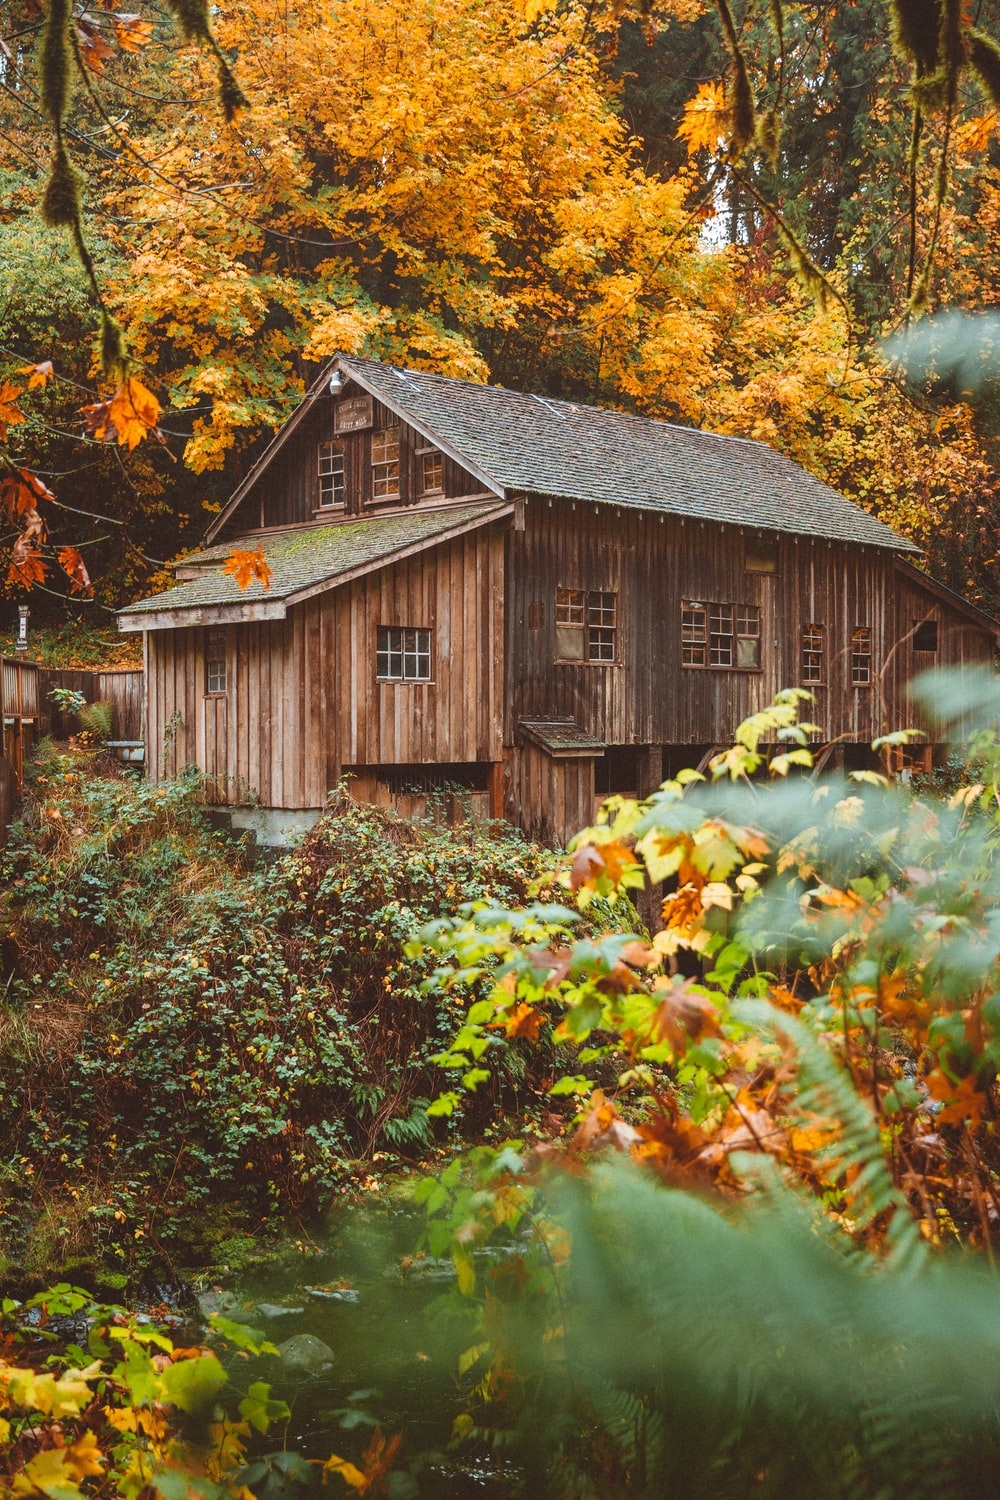 brown wooden house surrounded by orange trees